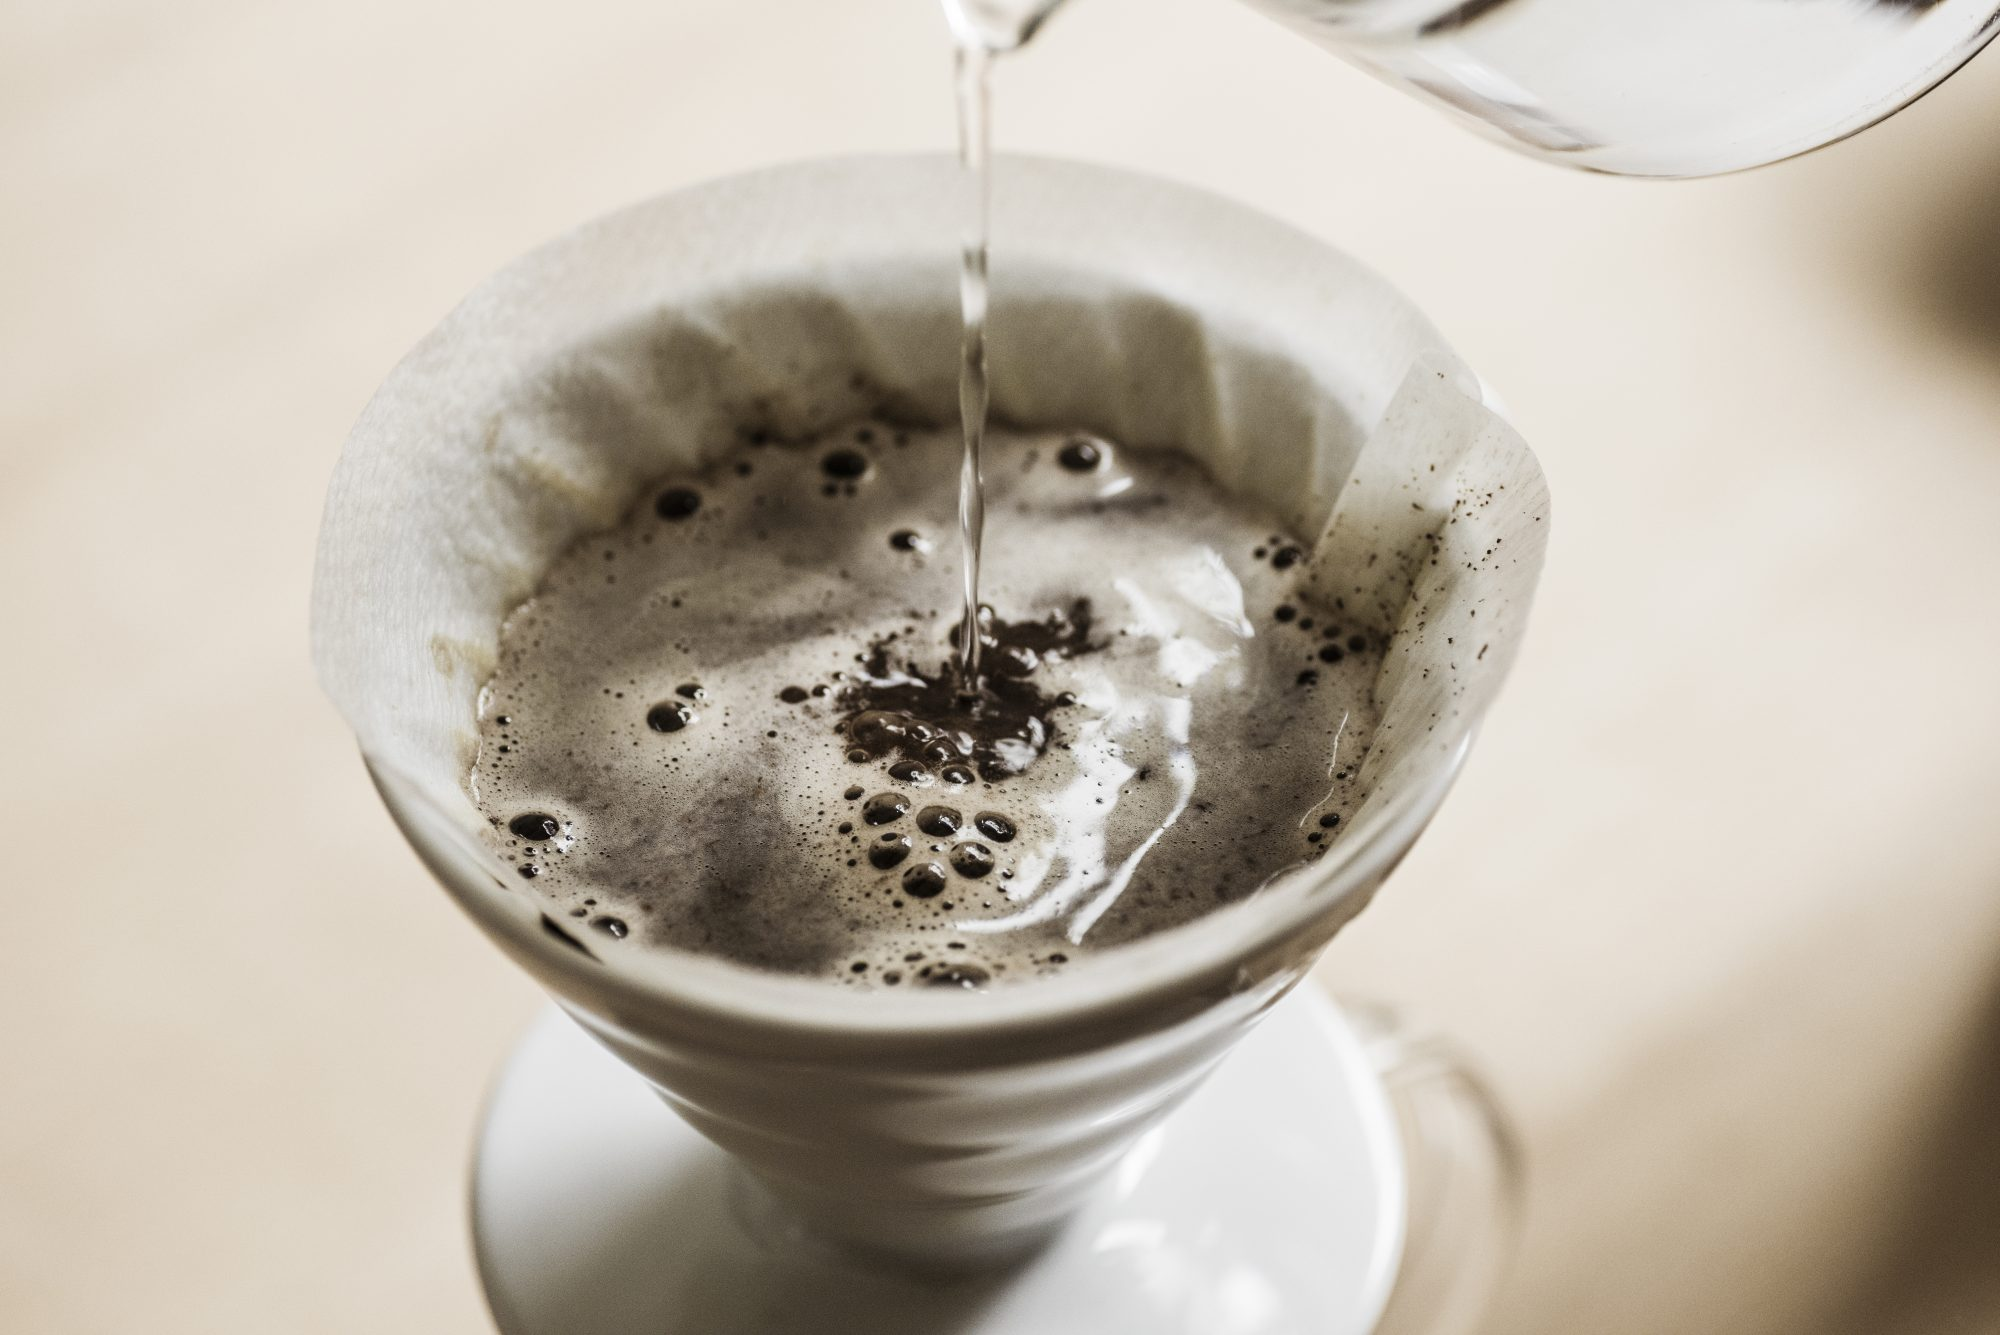 getty coffee grounds 032919